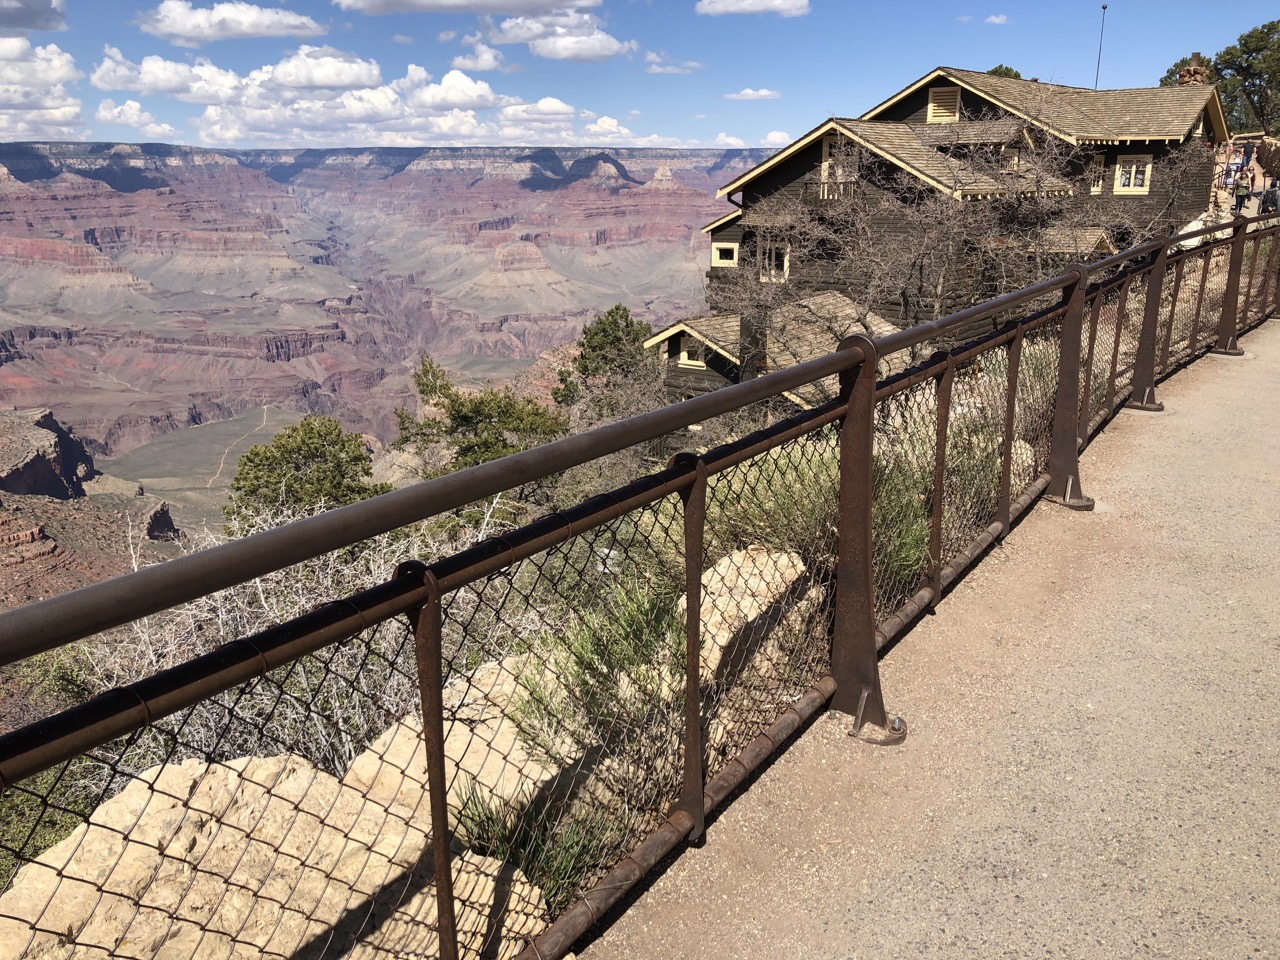 Cronkite News: Accidental fall leads to another fatality at Grand Canyon